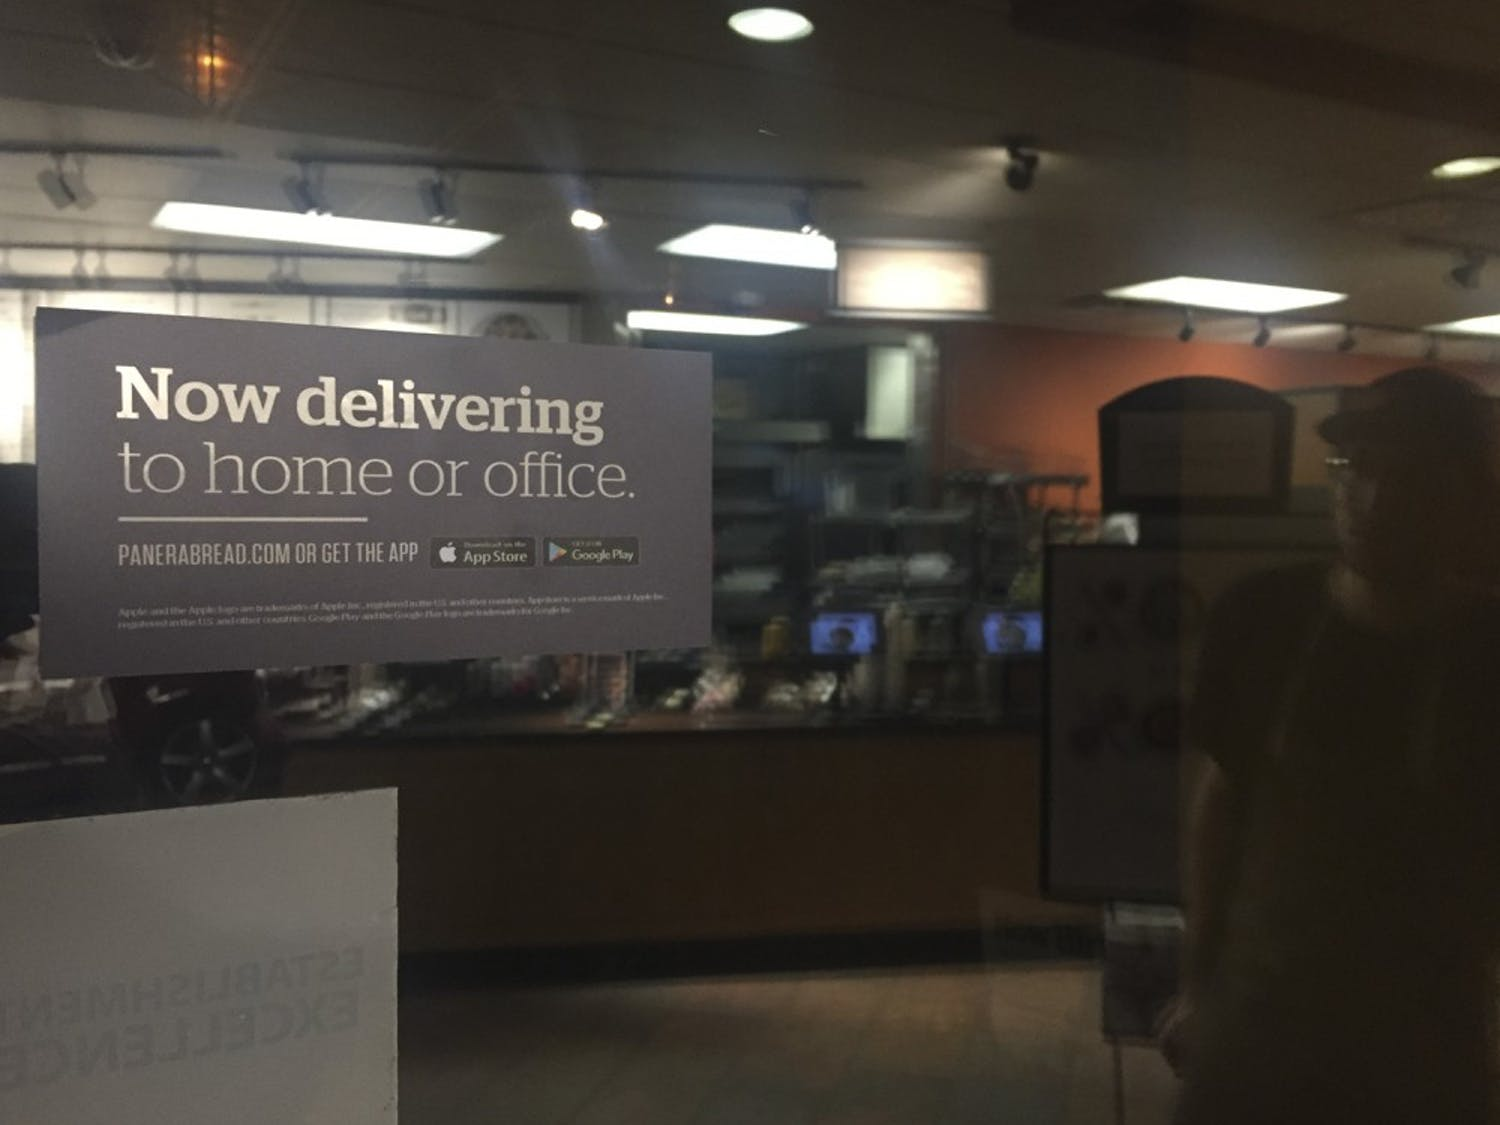 No matter where you live, on or off campus, sometimes you just need food delivered.